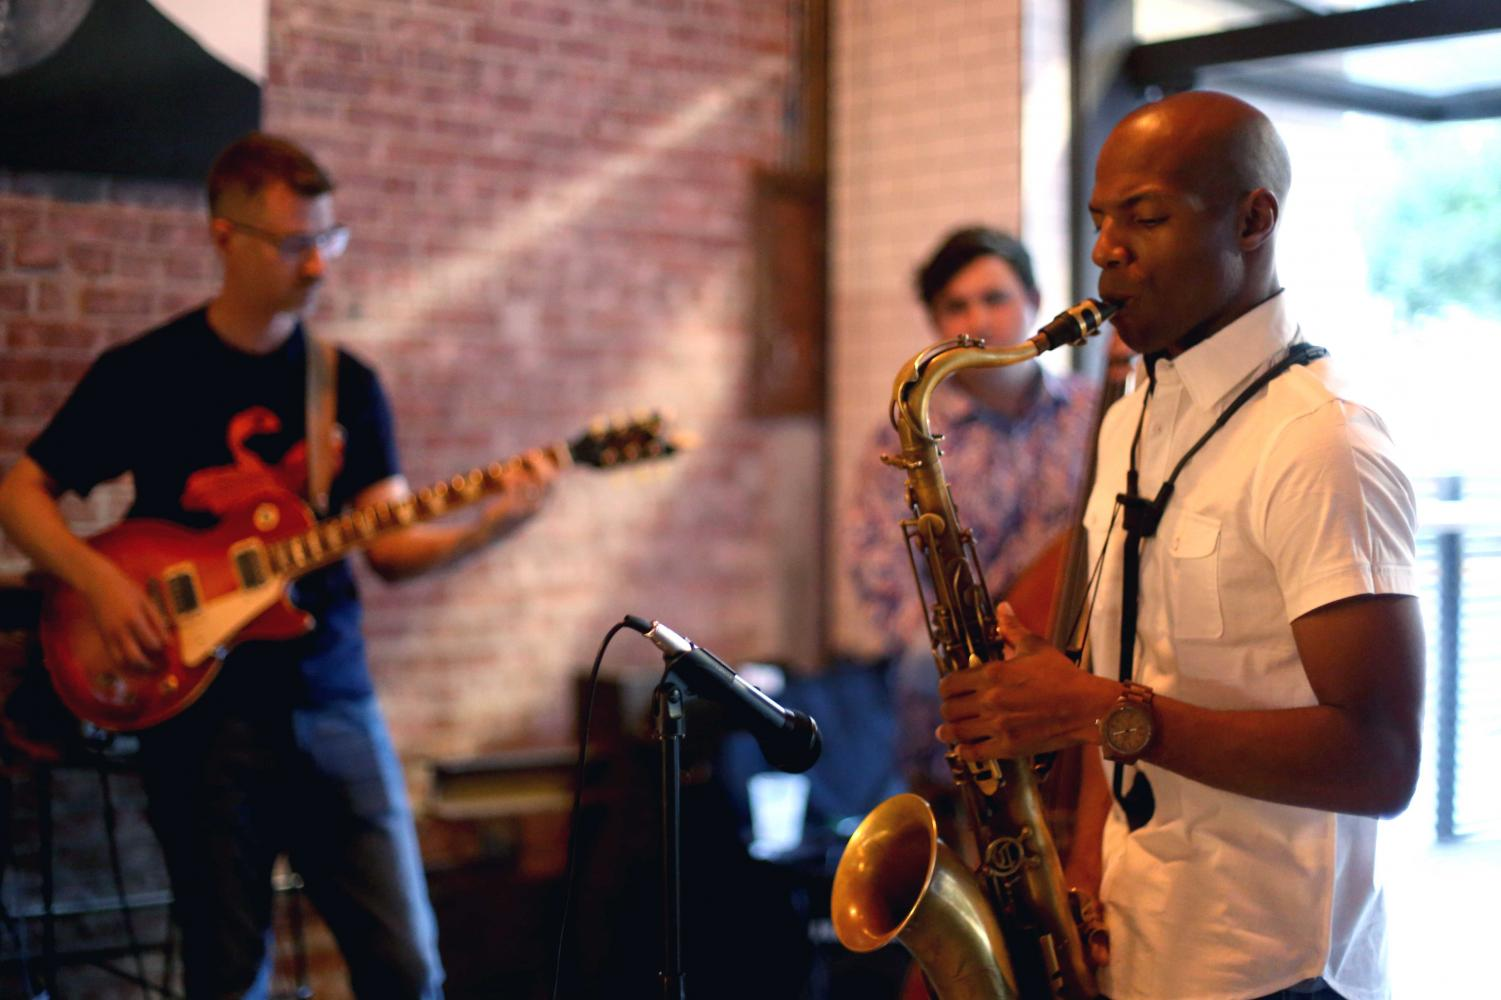 Ben+Newsome+plays+the+sax+for+The+Eddie+Provencio+Jazz+Band.